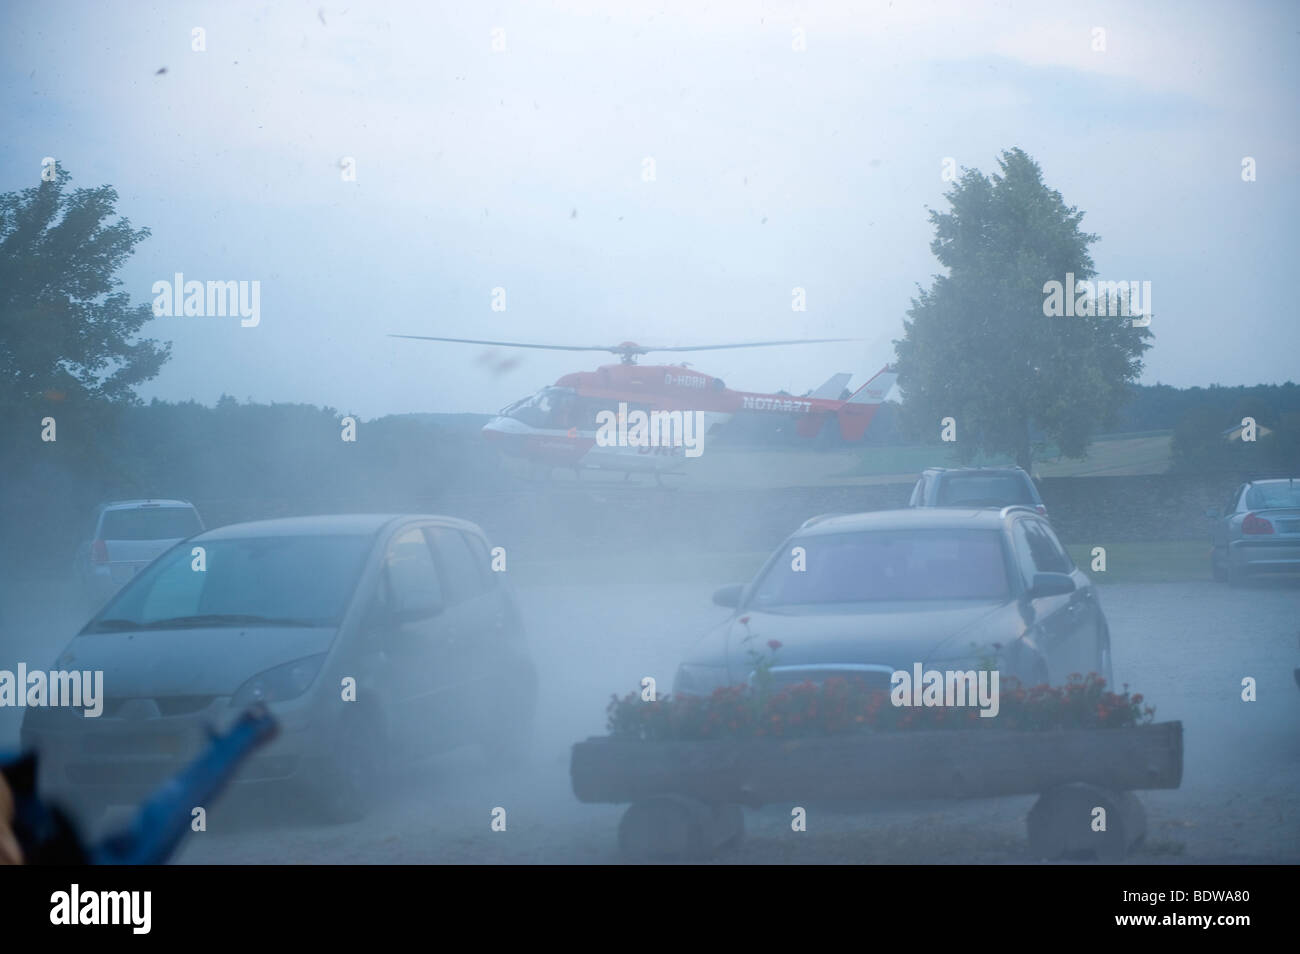 red rescue helicopter emergency doctor physician response rescue life saver lifesaver fly flying flight landing - Stock Image